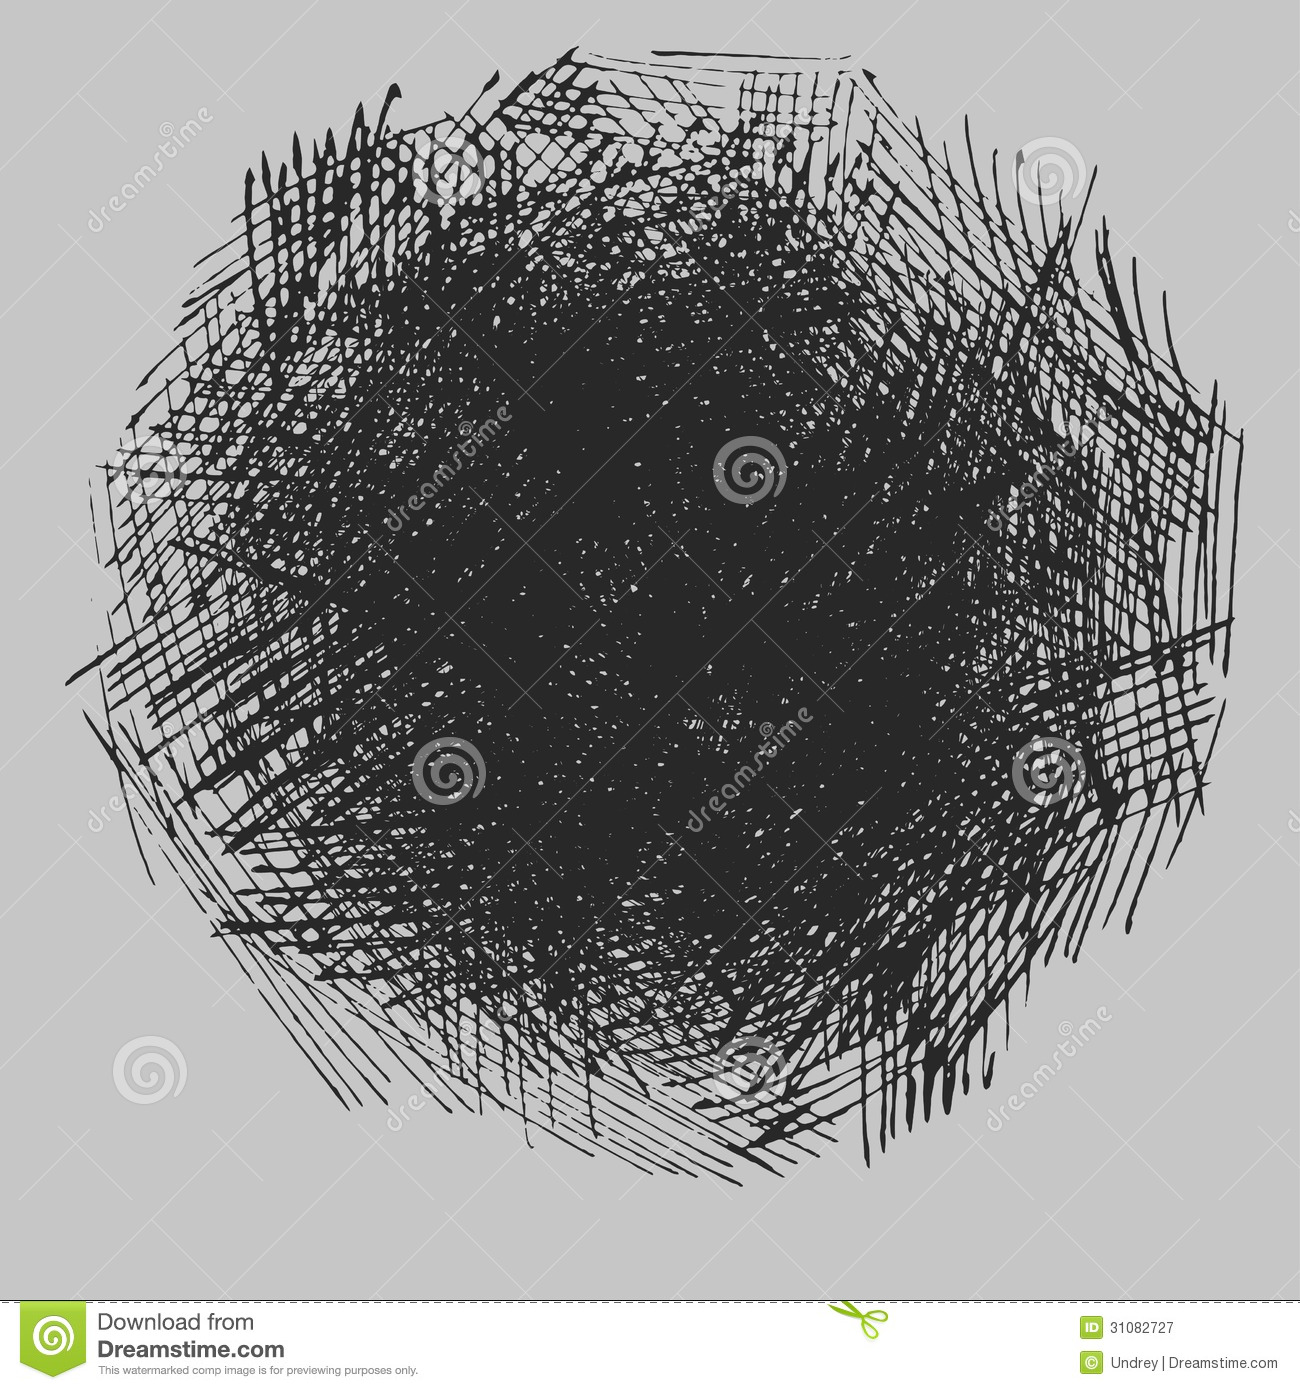 rough hatching drawing texture stock illustration